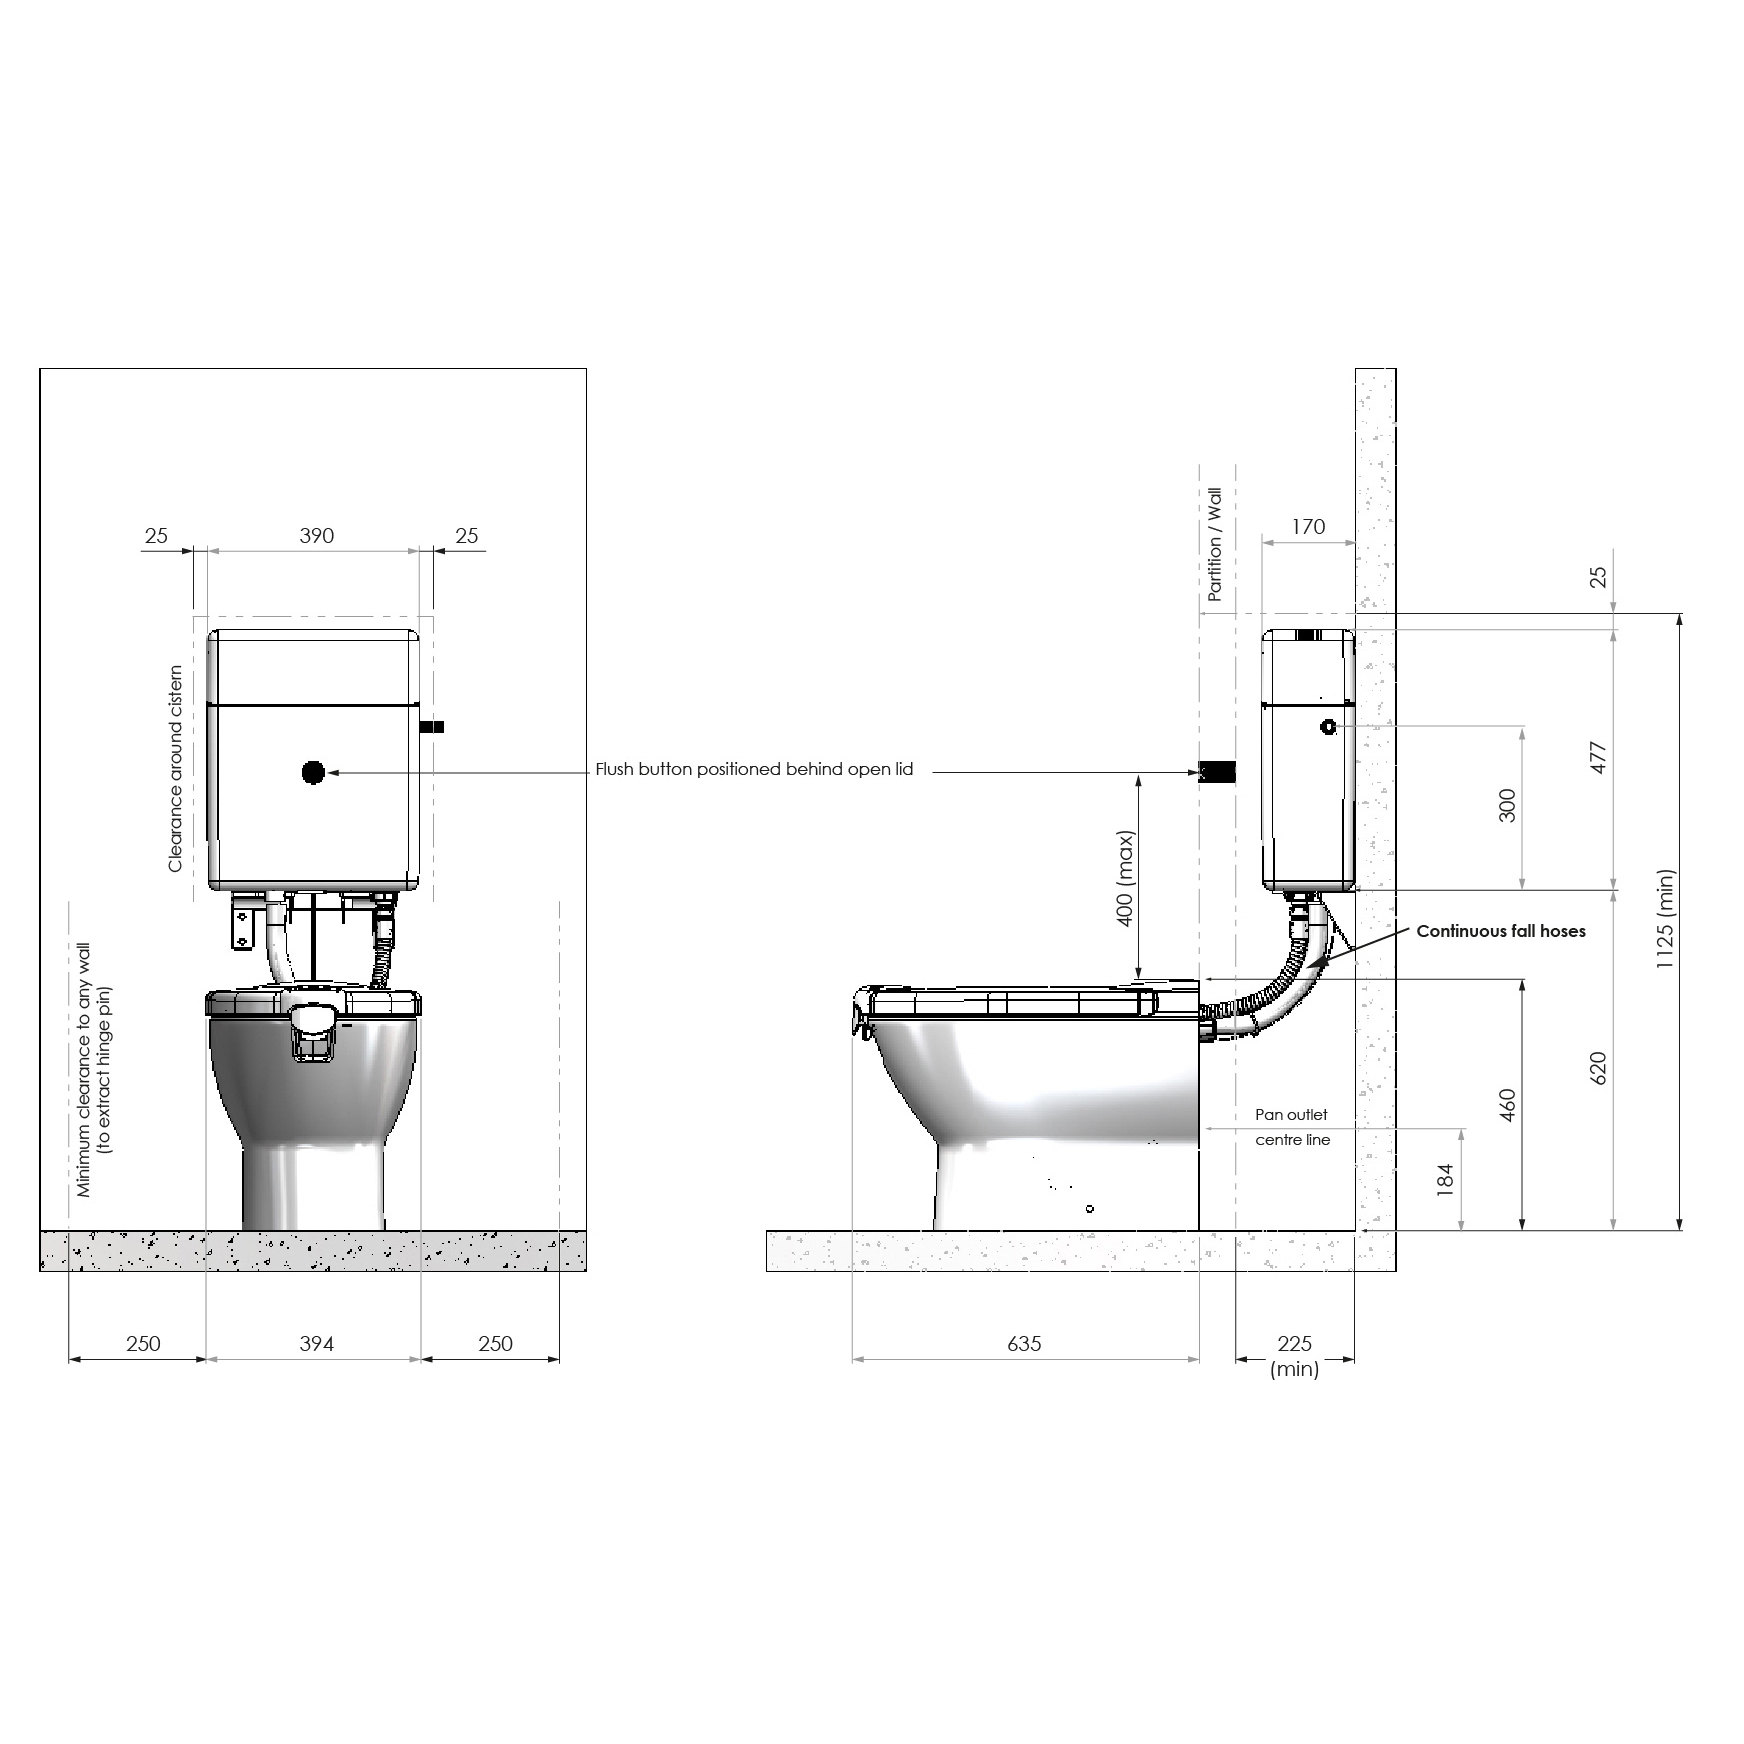 hight resolution of propelair high performance toilet dimensions diagram